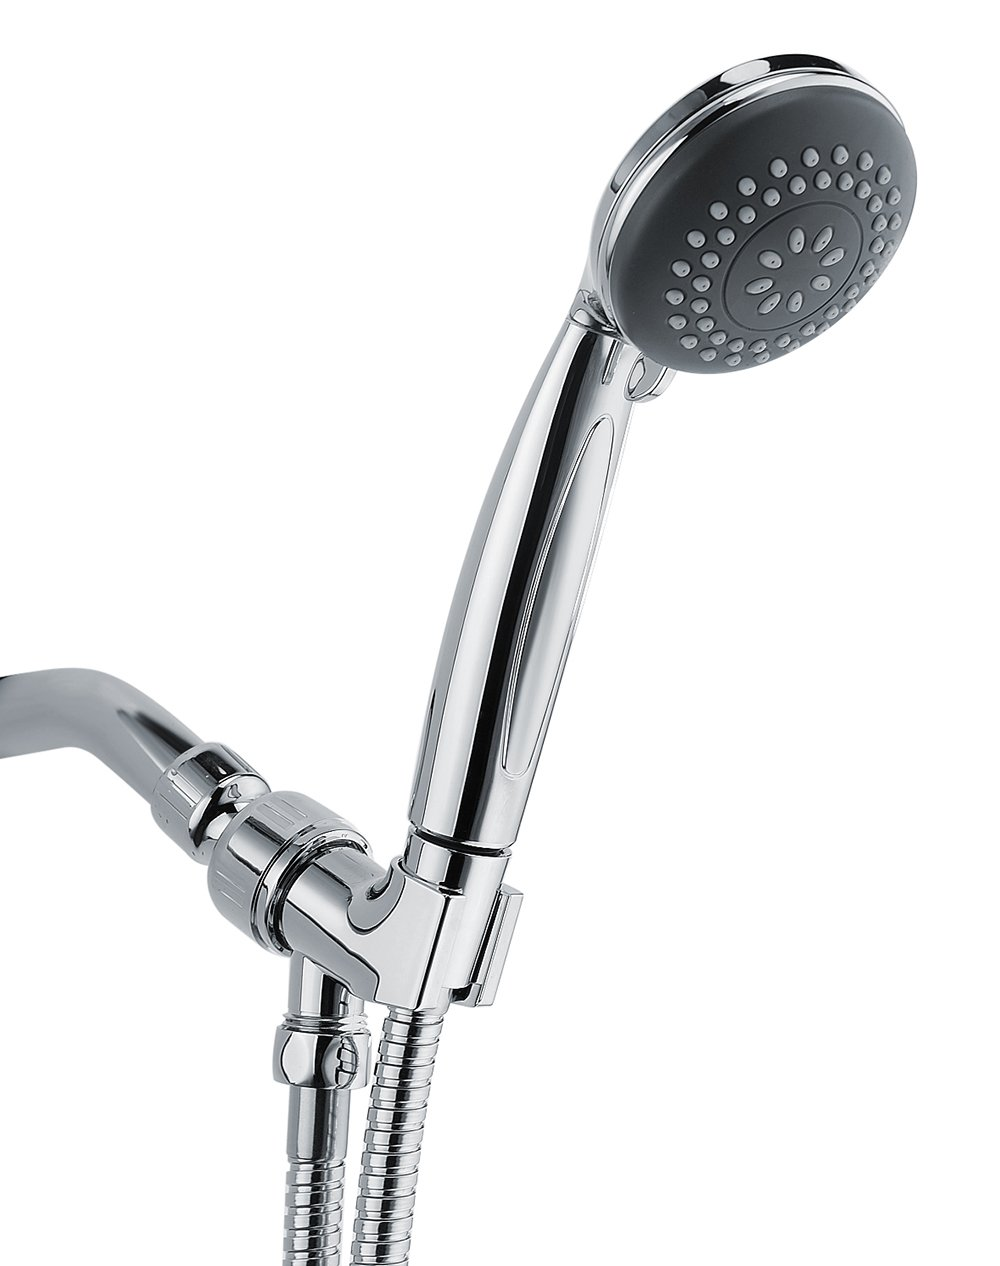 Wassern Handheld Shower Head, High Pressure Rainfull Massage Spa Flexible 60'' Stainless Steel Hose Angle Adjustable Bracket 4setting 3'' Chrome